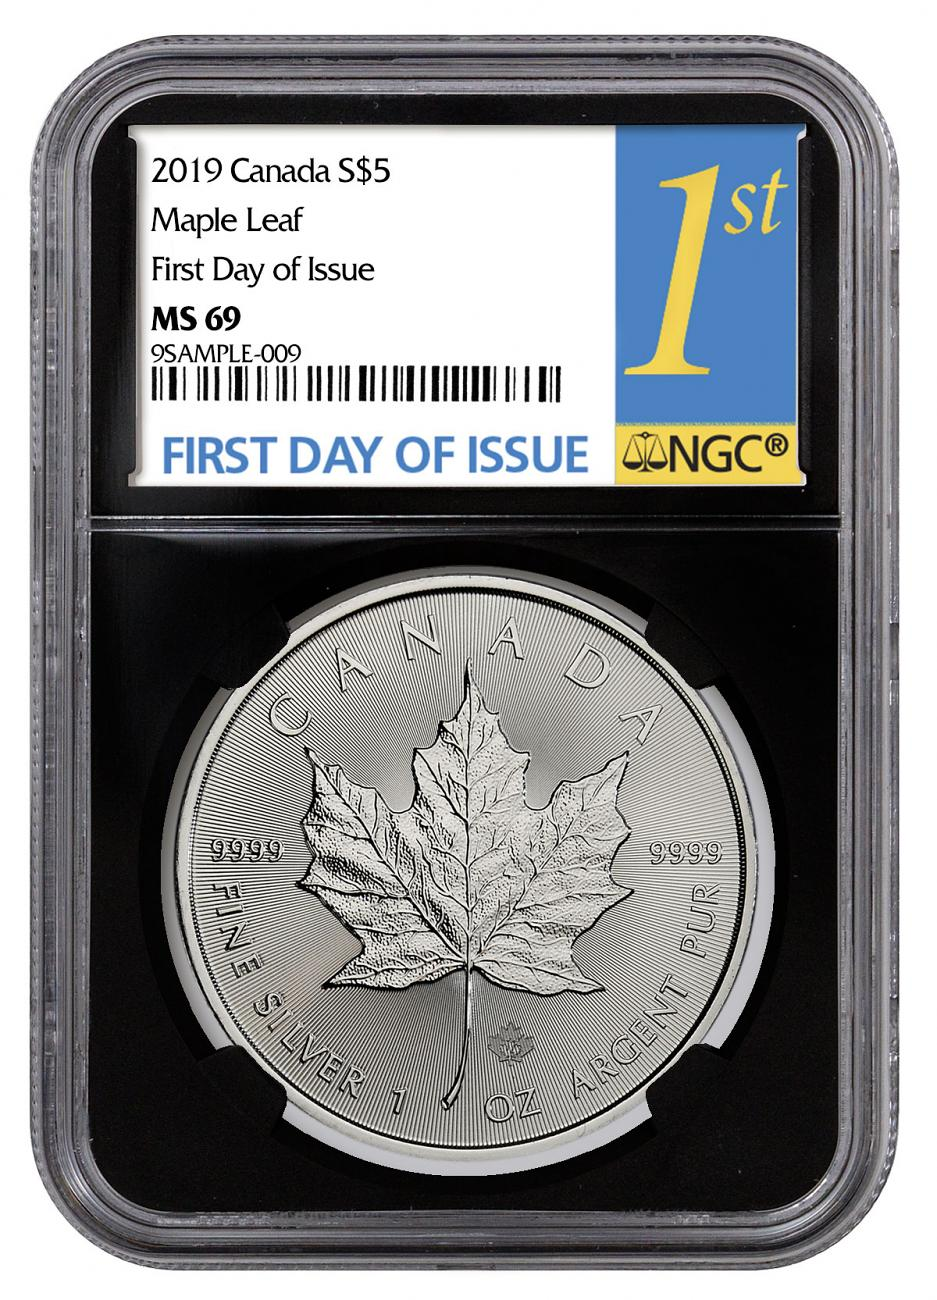 2019 Canada 1 oz Silver Maple Leaf $5 Coin NGC MS69 FDI Black Core Holder